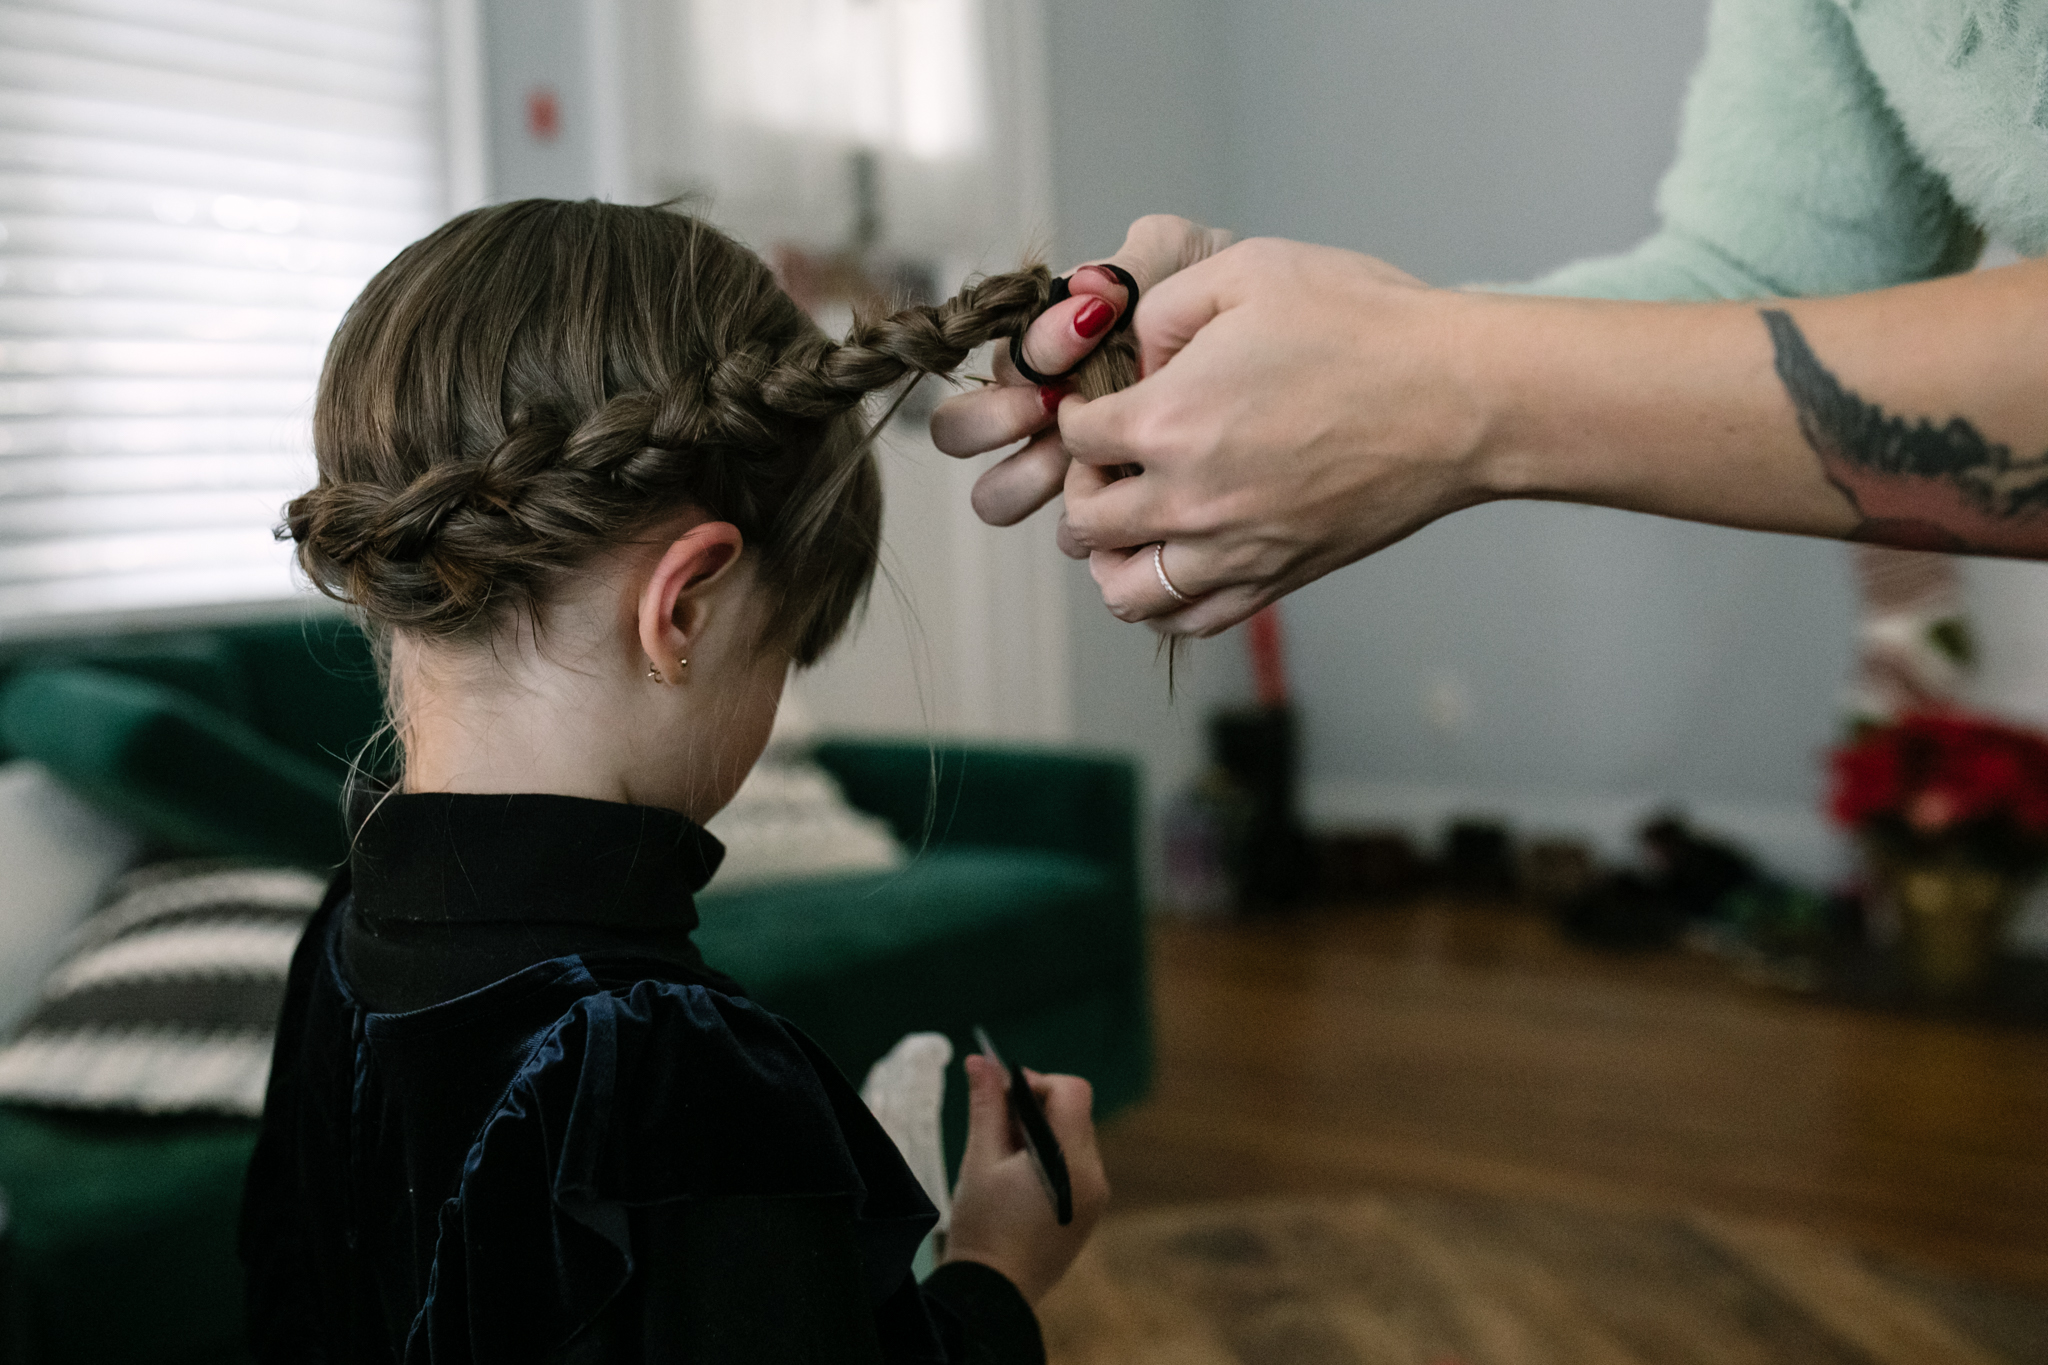 A mother ties the end of a crown braid she has made on her daughter's hair